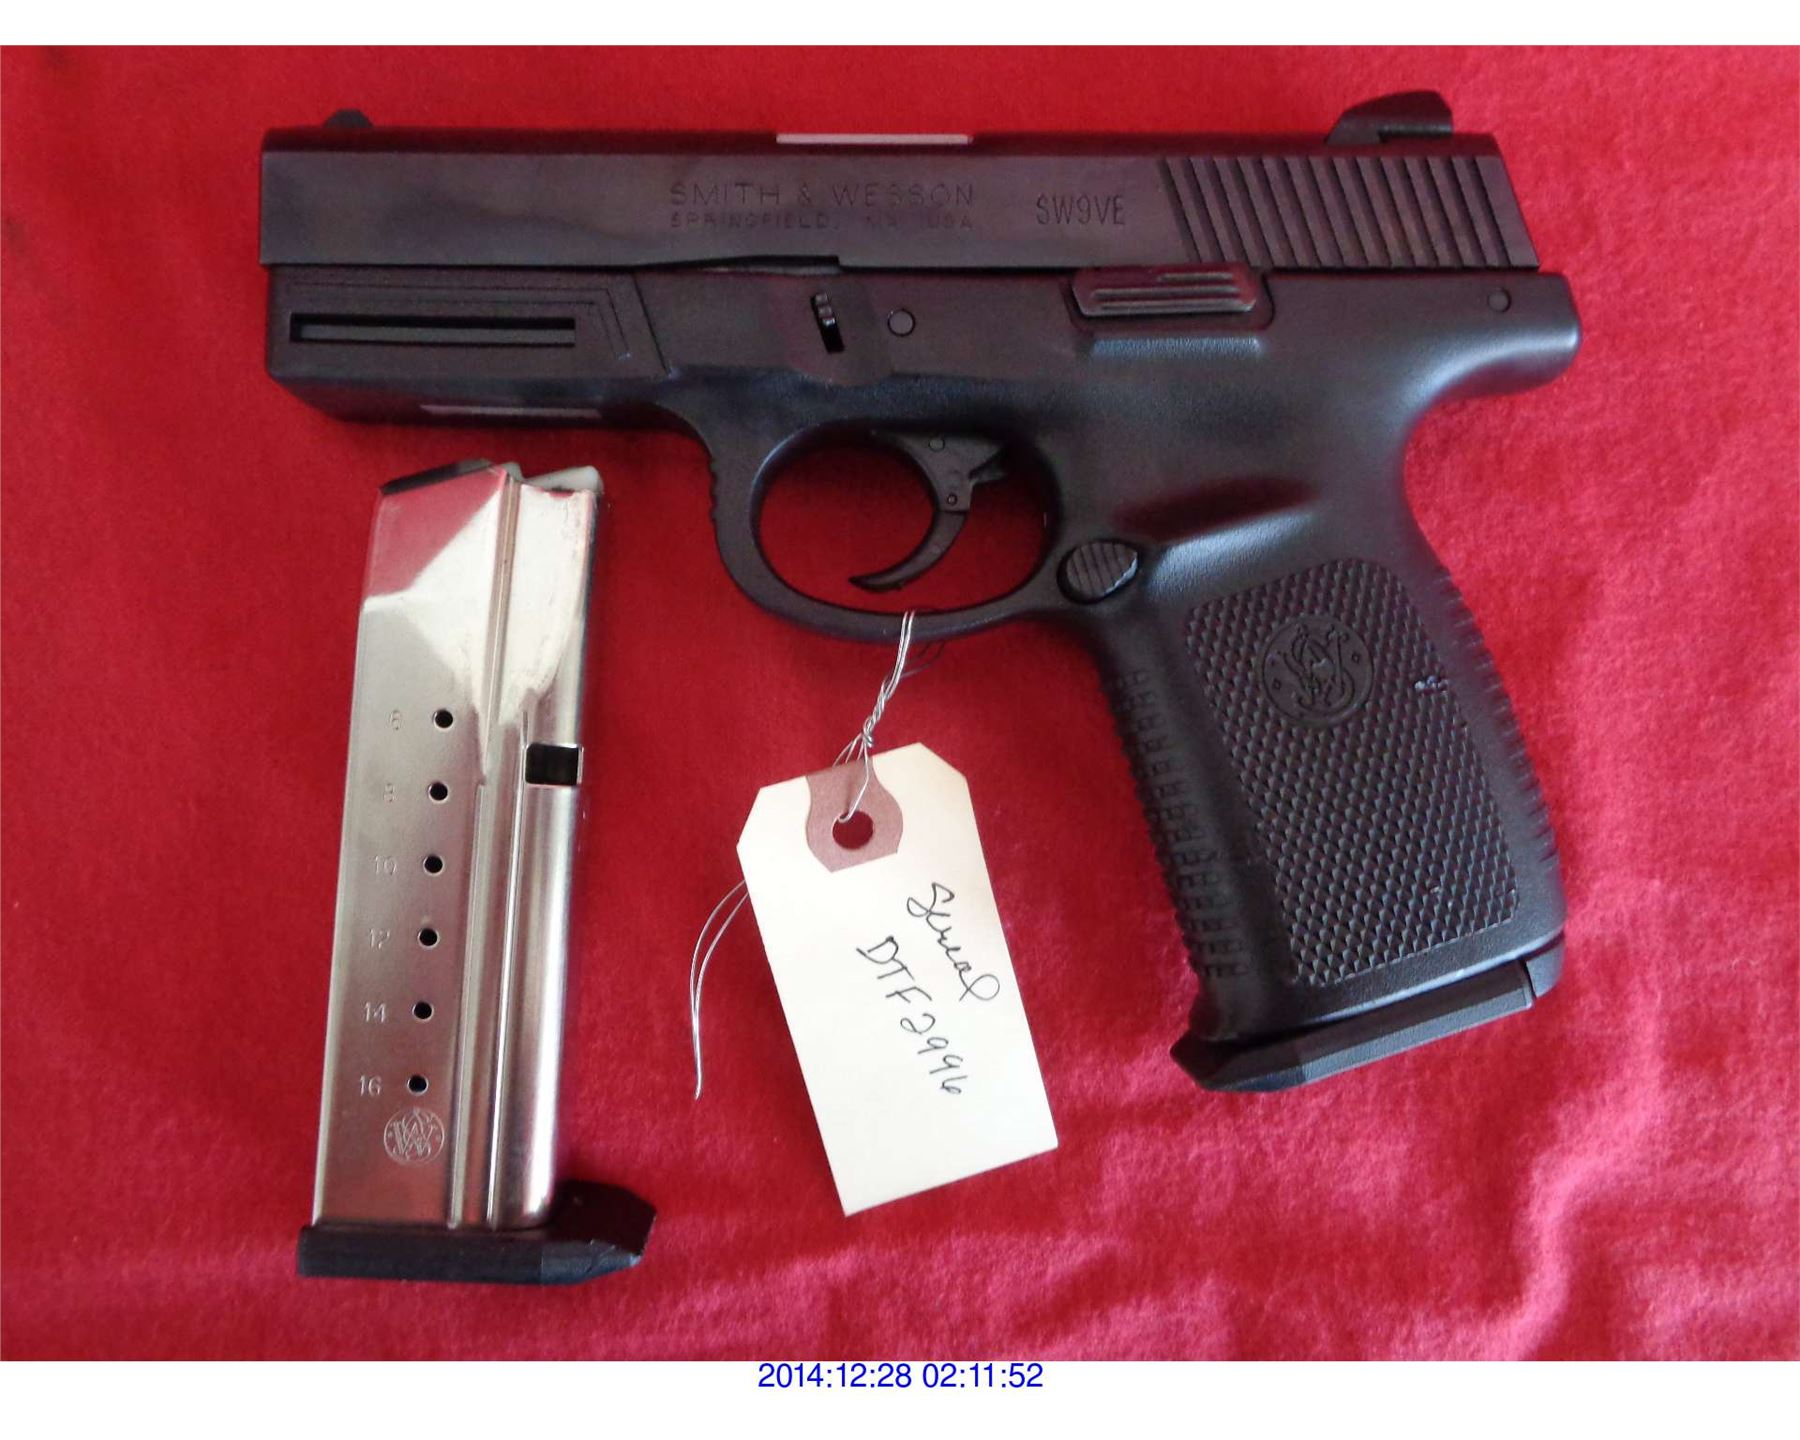 smith and wesson sw9ve serial number location